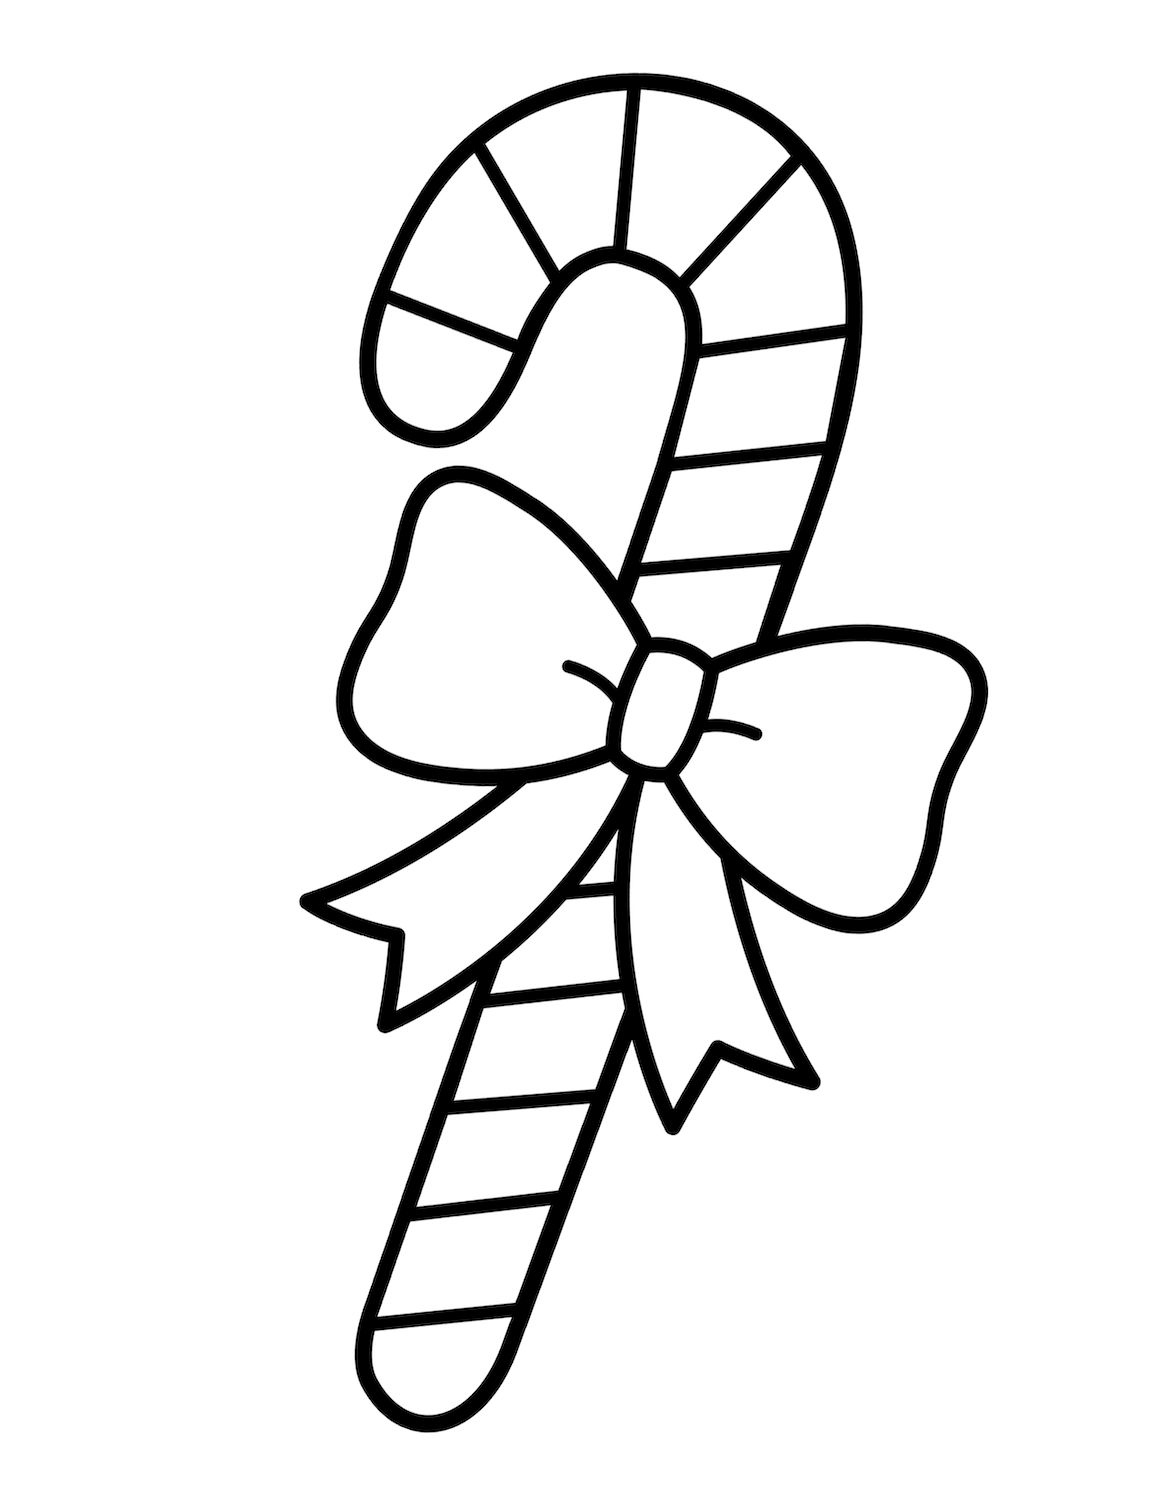 Free Candy Cane Coloring Pages Tons Of Free Christmas Coloring